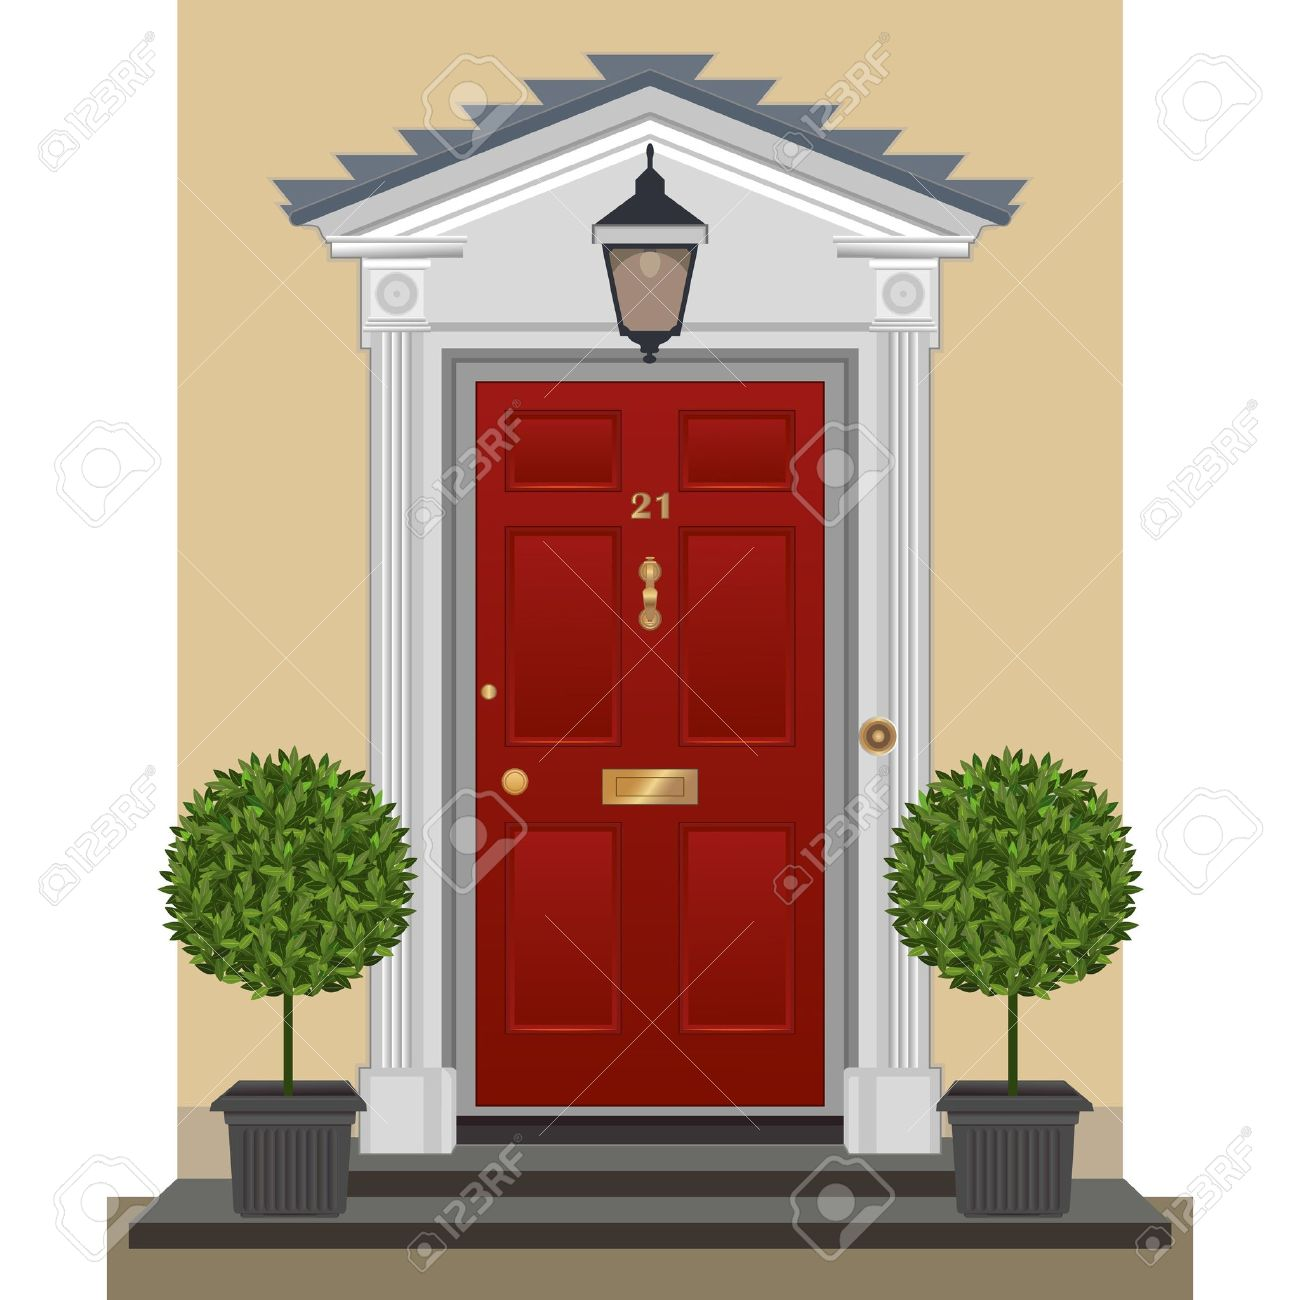 Front door clipart - Front Door Red Painted Front Door With Brass Fittings